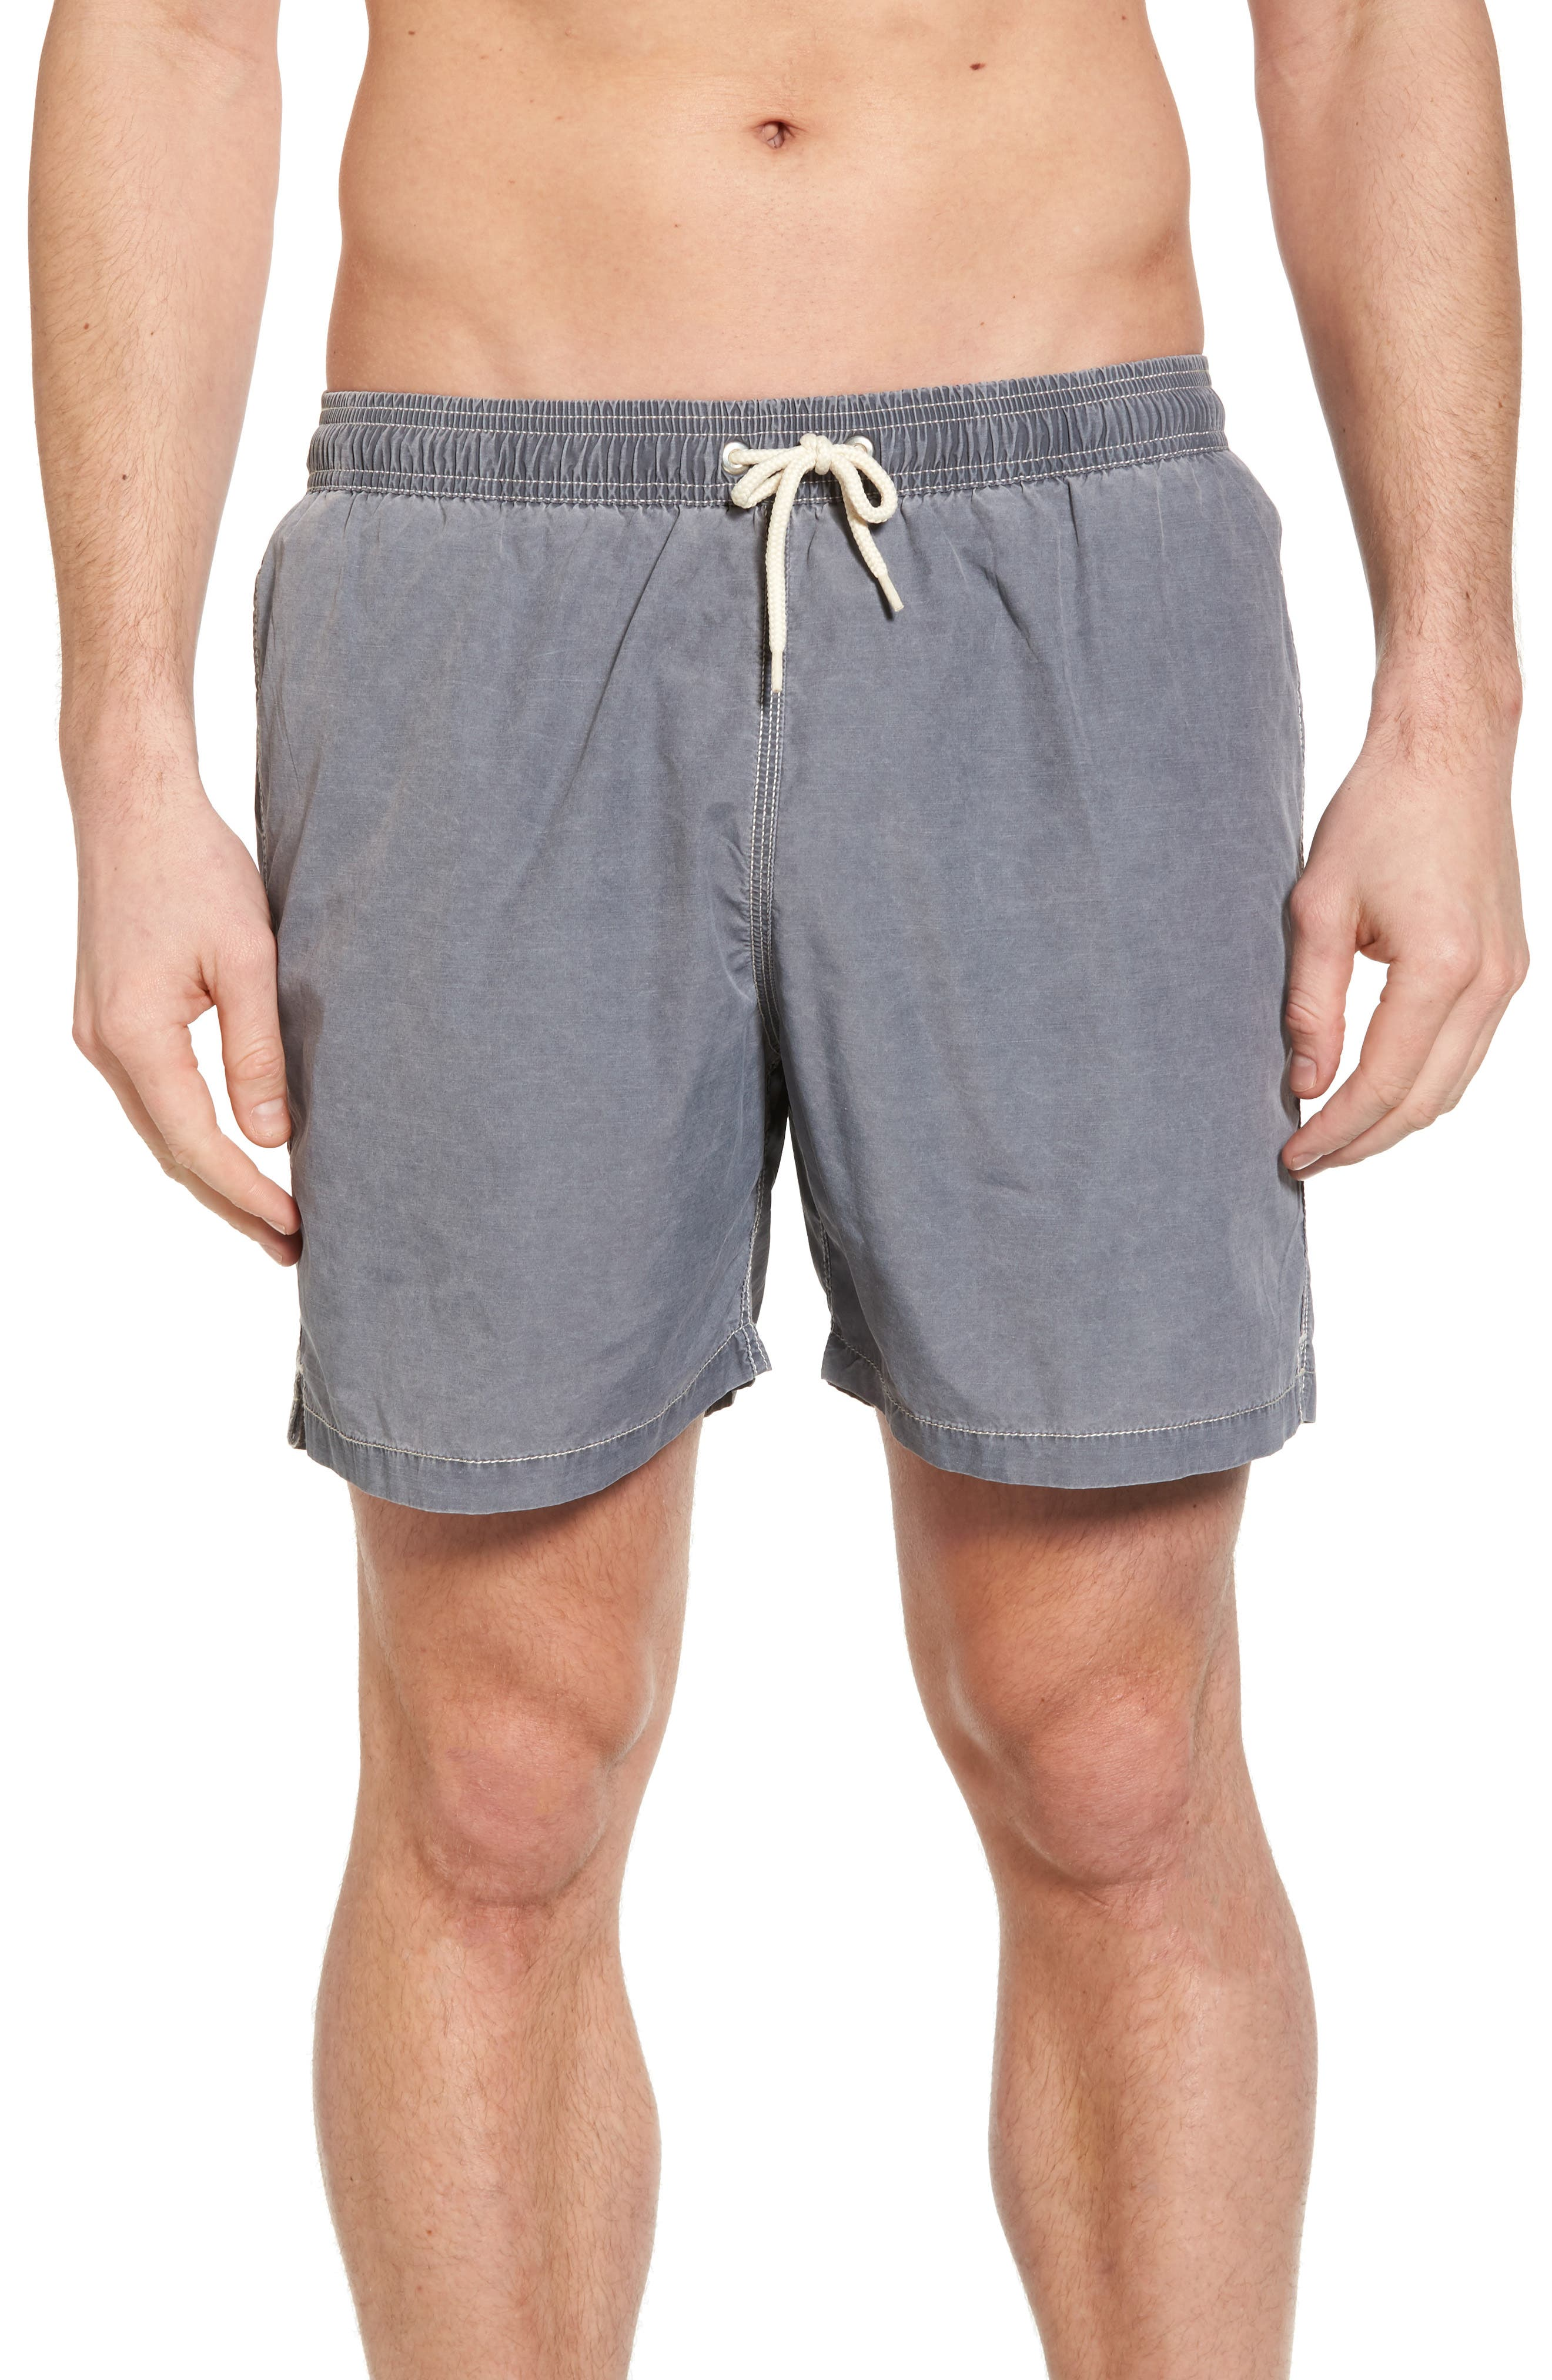 Victor Swim Trunks,                             Main thumbnail 1, color,                             021